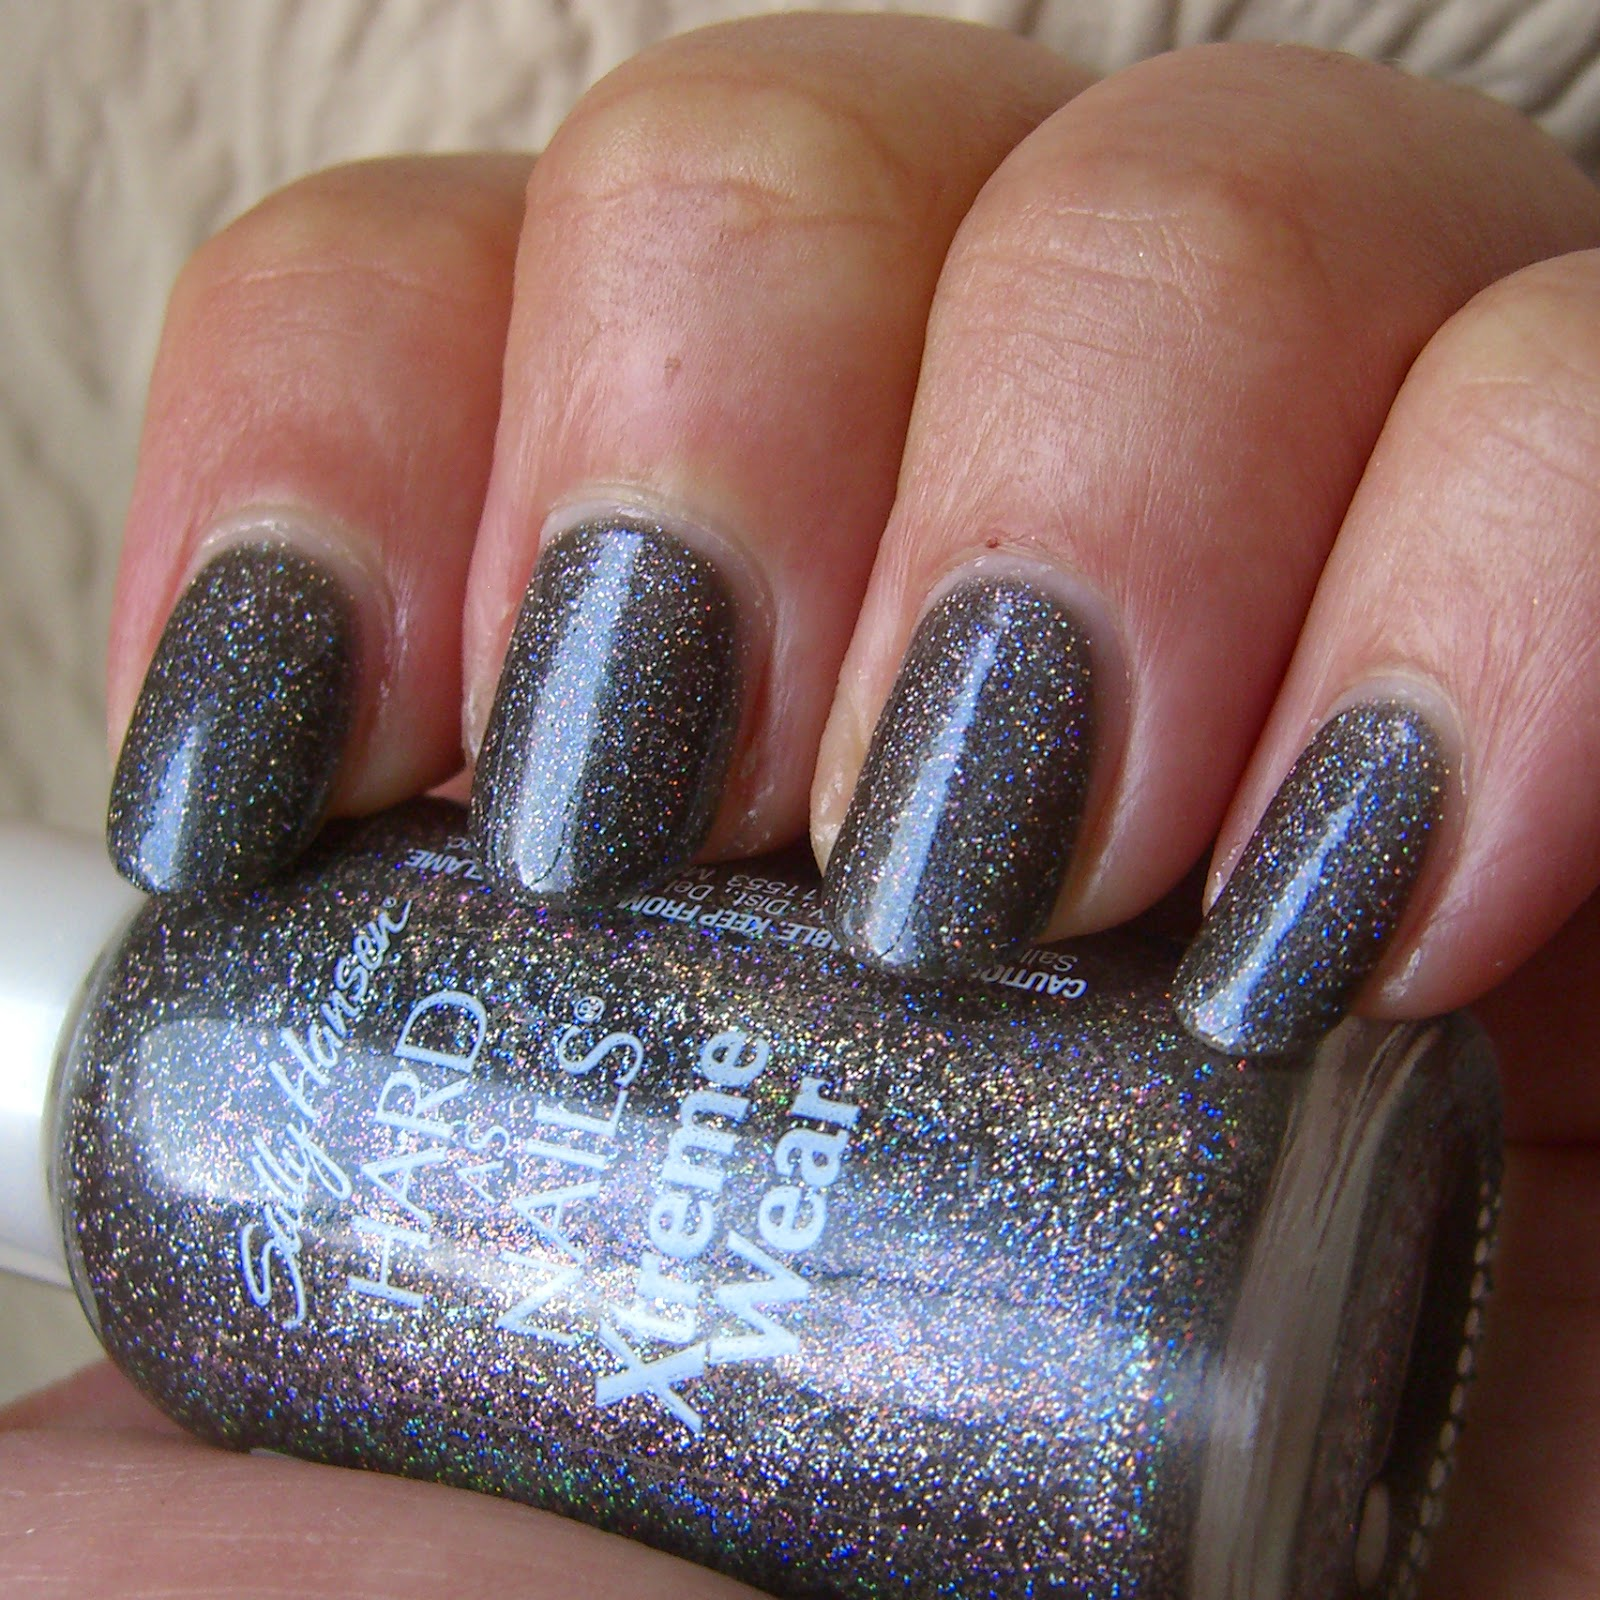 I Do Love This Polish, So Much So That When I Saw A Bottle In The Poundshop  I Picked It Up As A Back Up, But Itu0027s Slightly Different So Iu0027ll Have ...